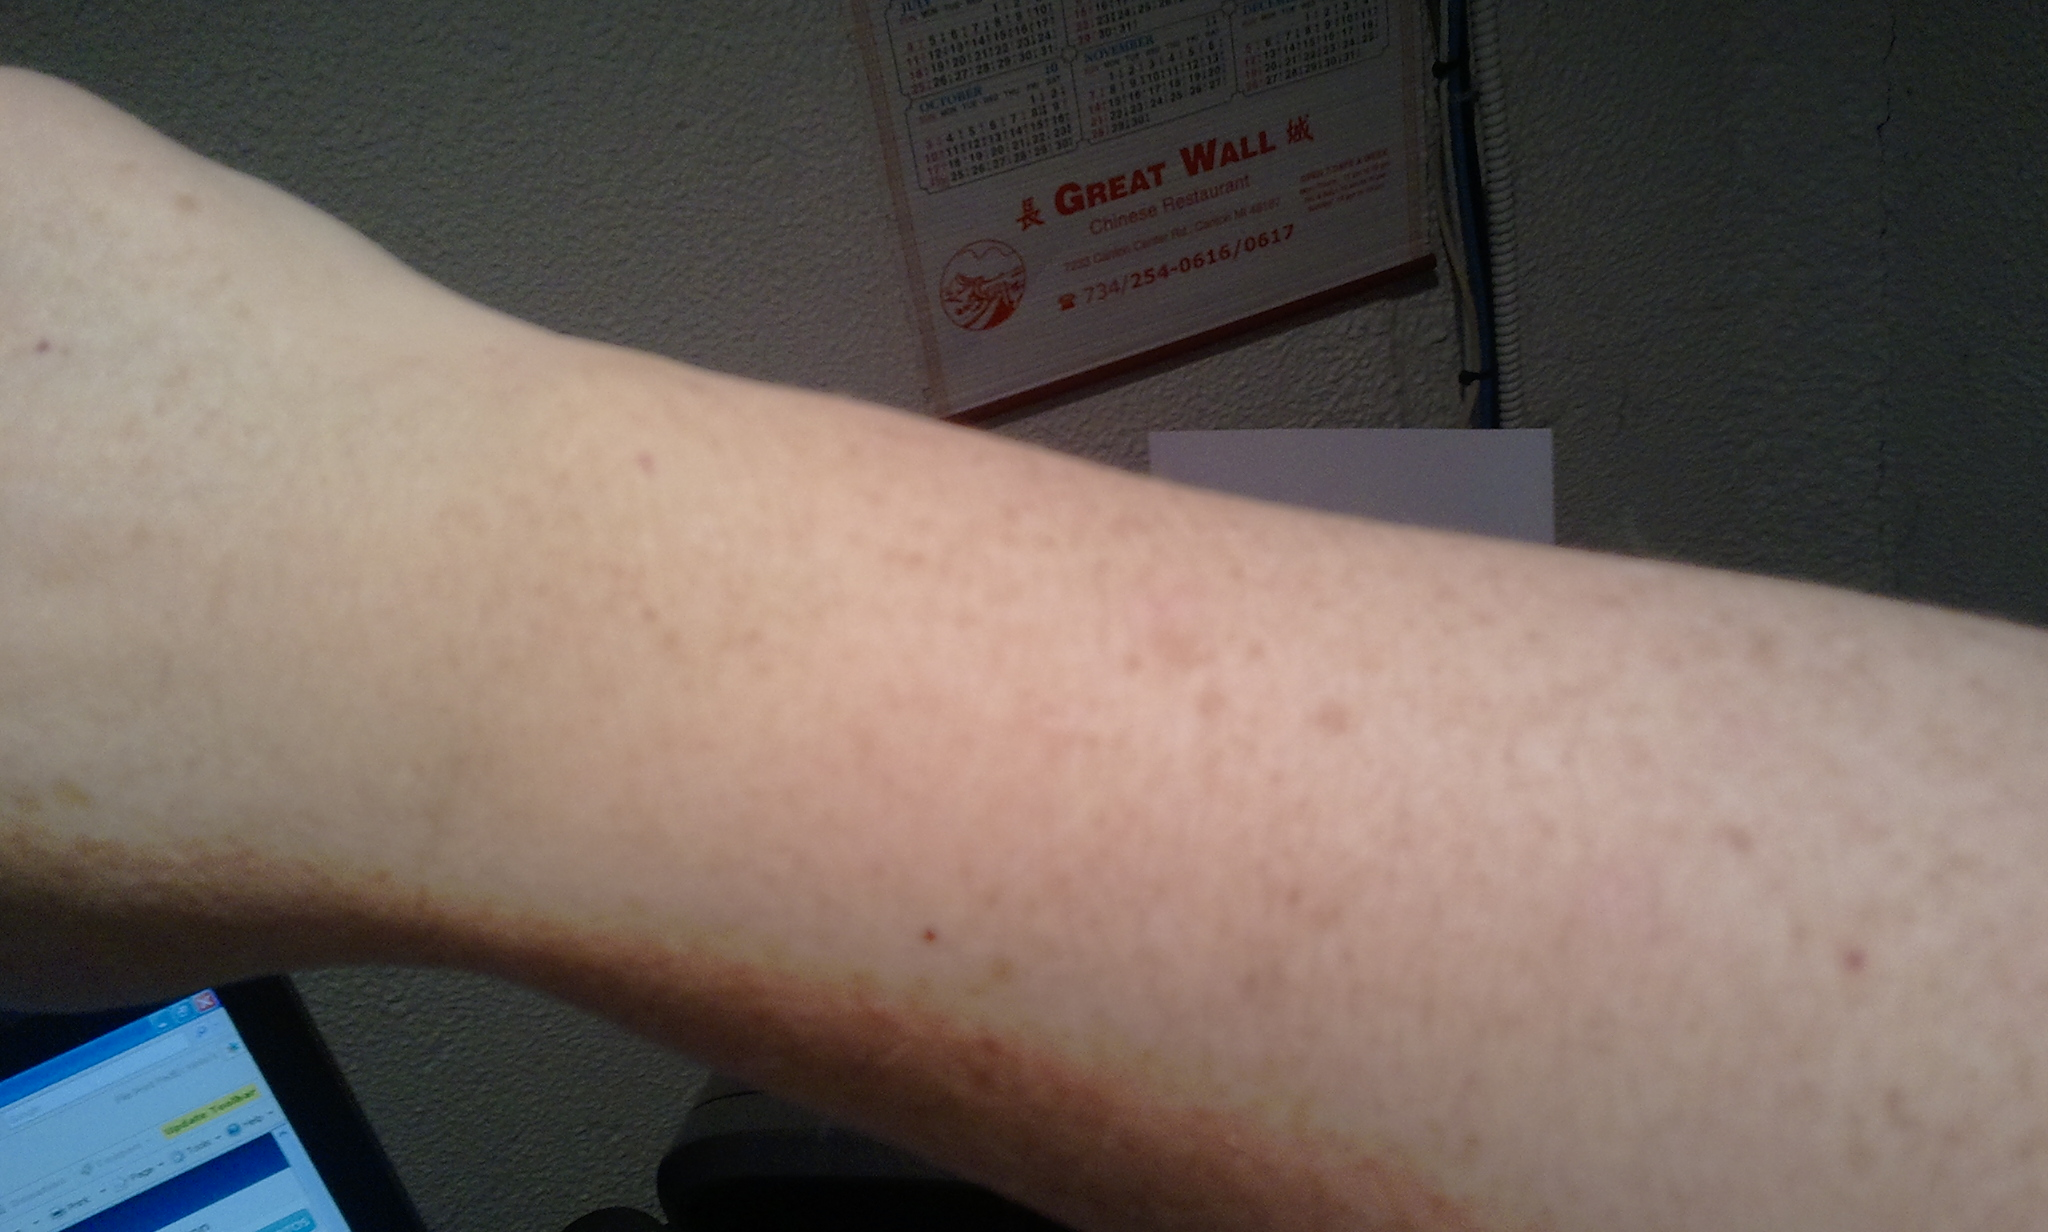 Had one small dark red little skin spot on my arm i noticed